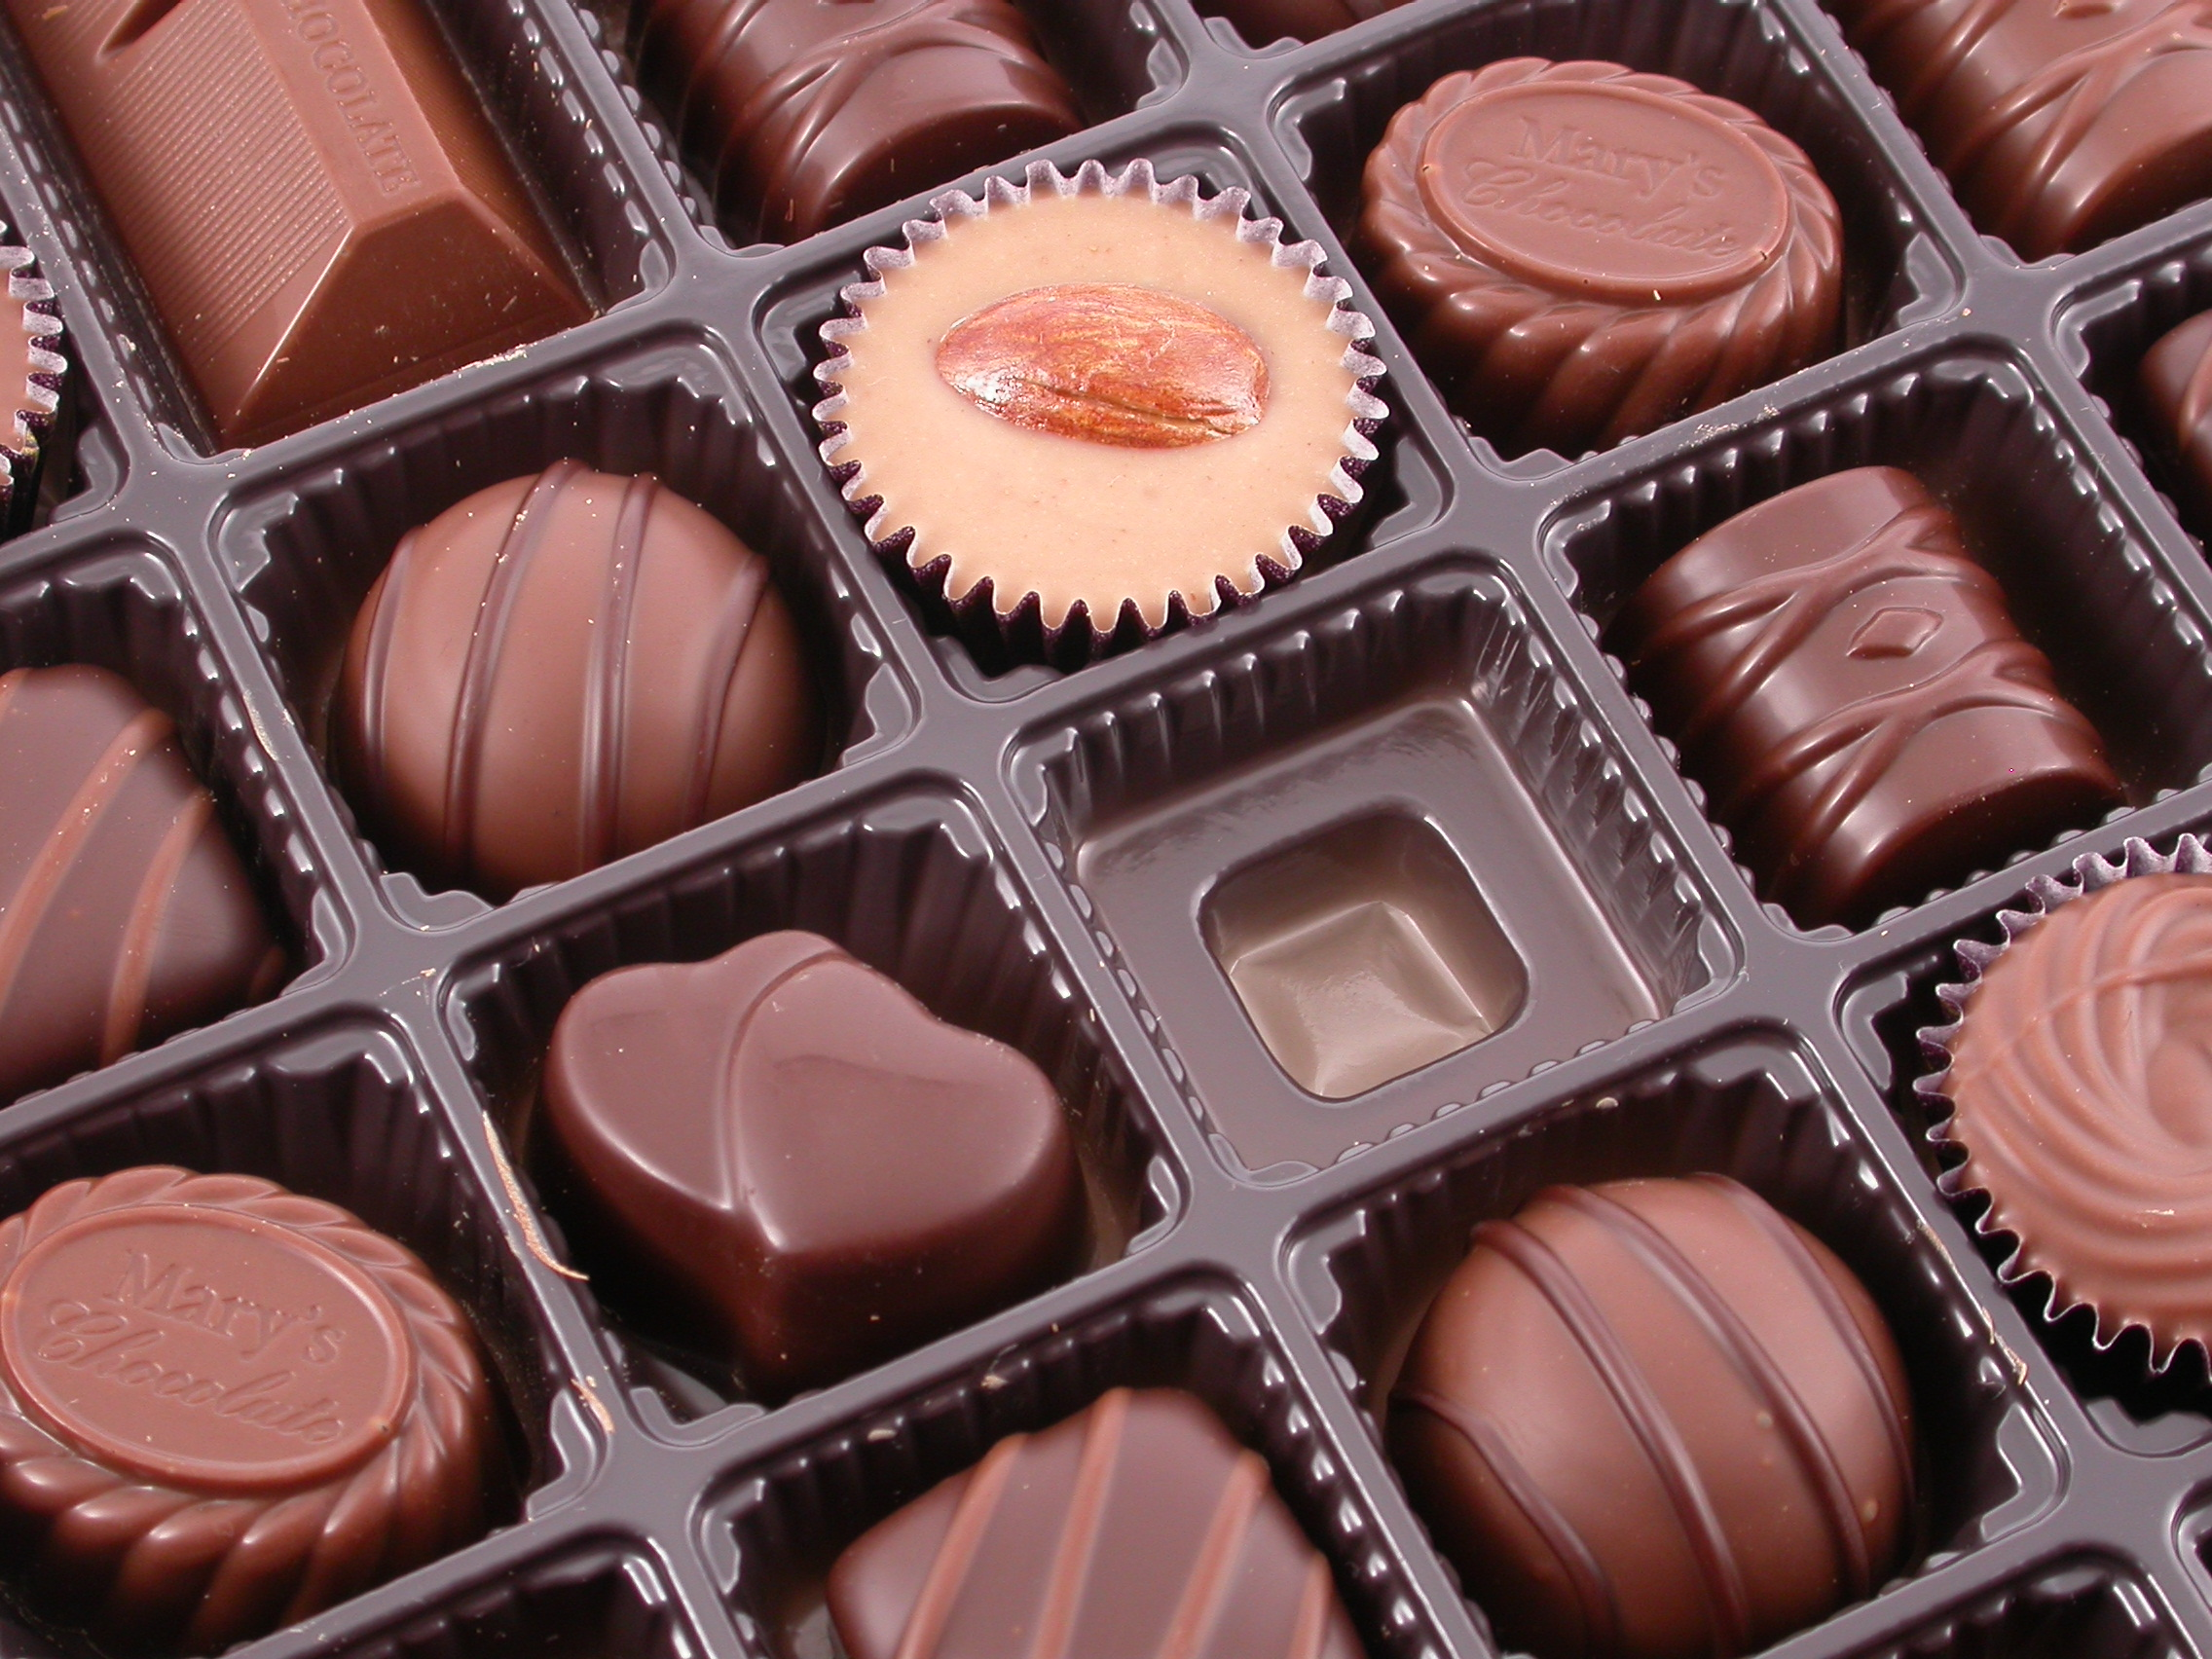 Myth: Eating chocolate and fried foods will give you acne